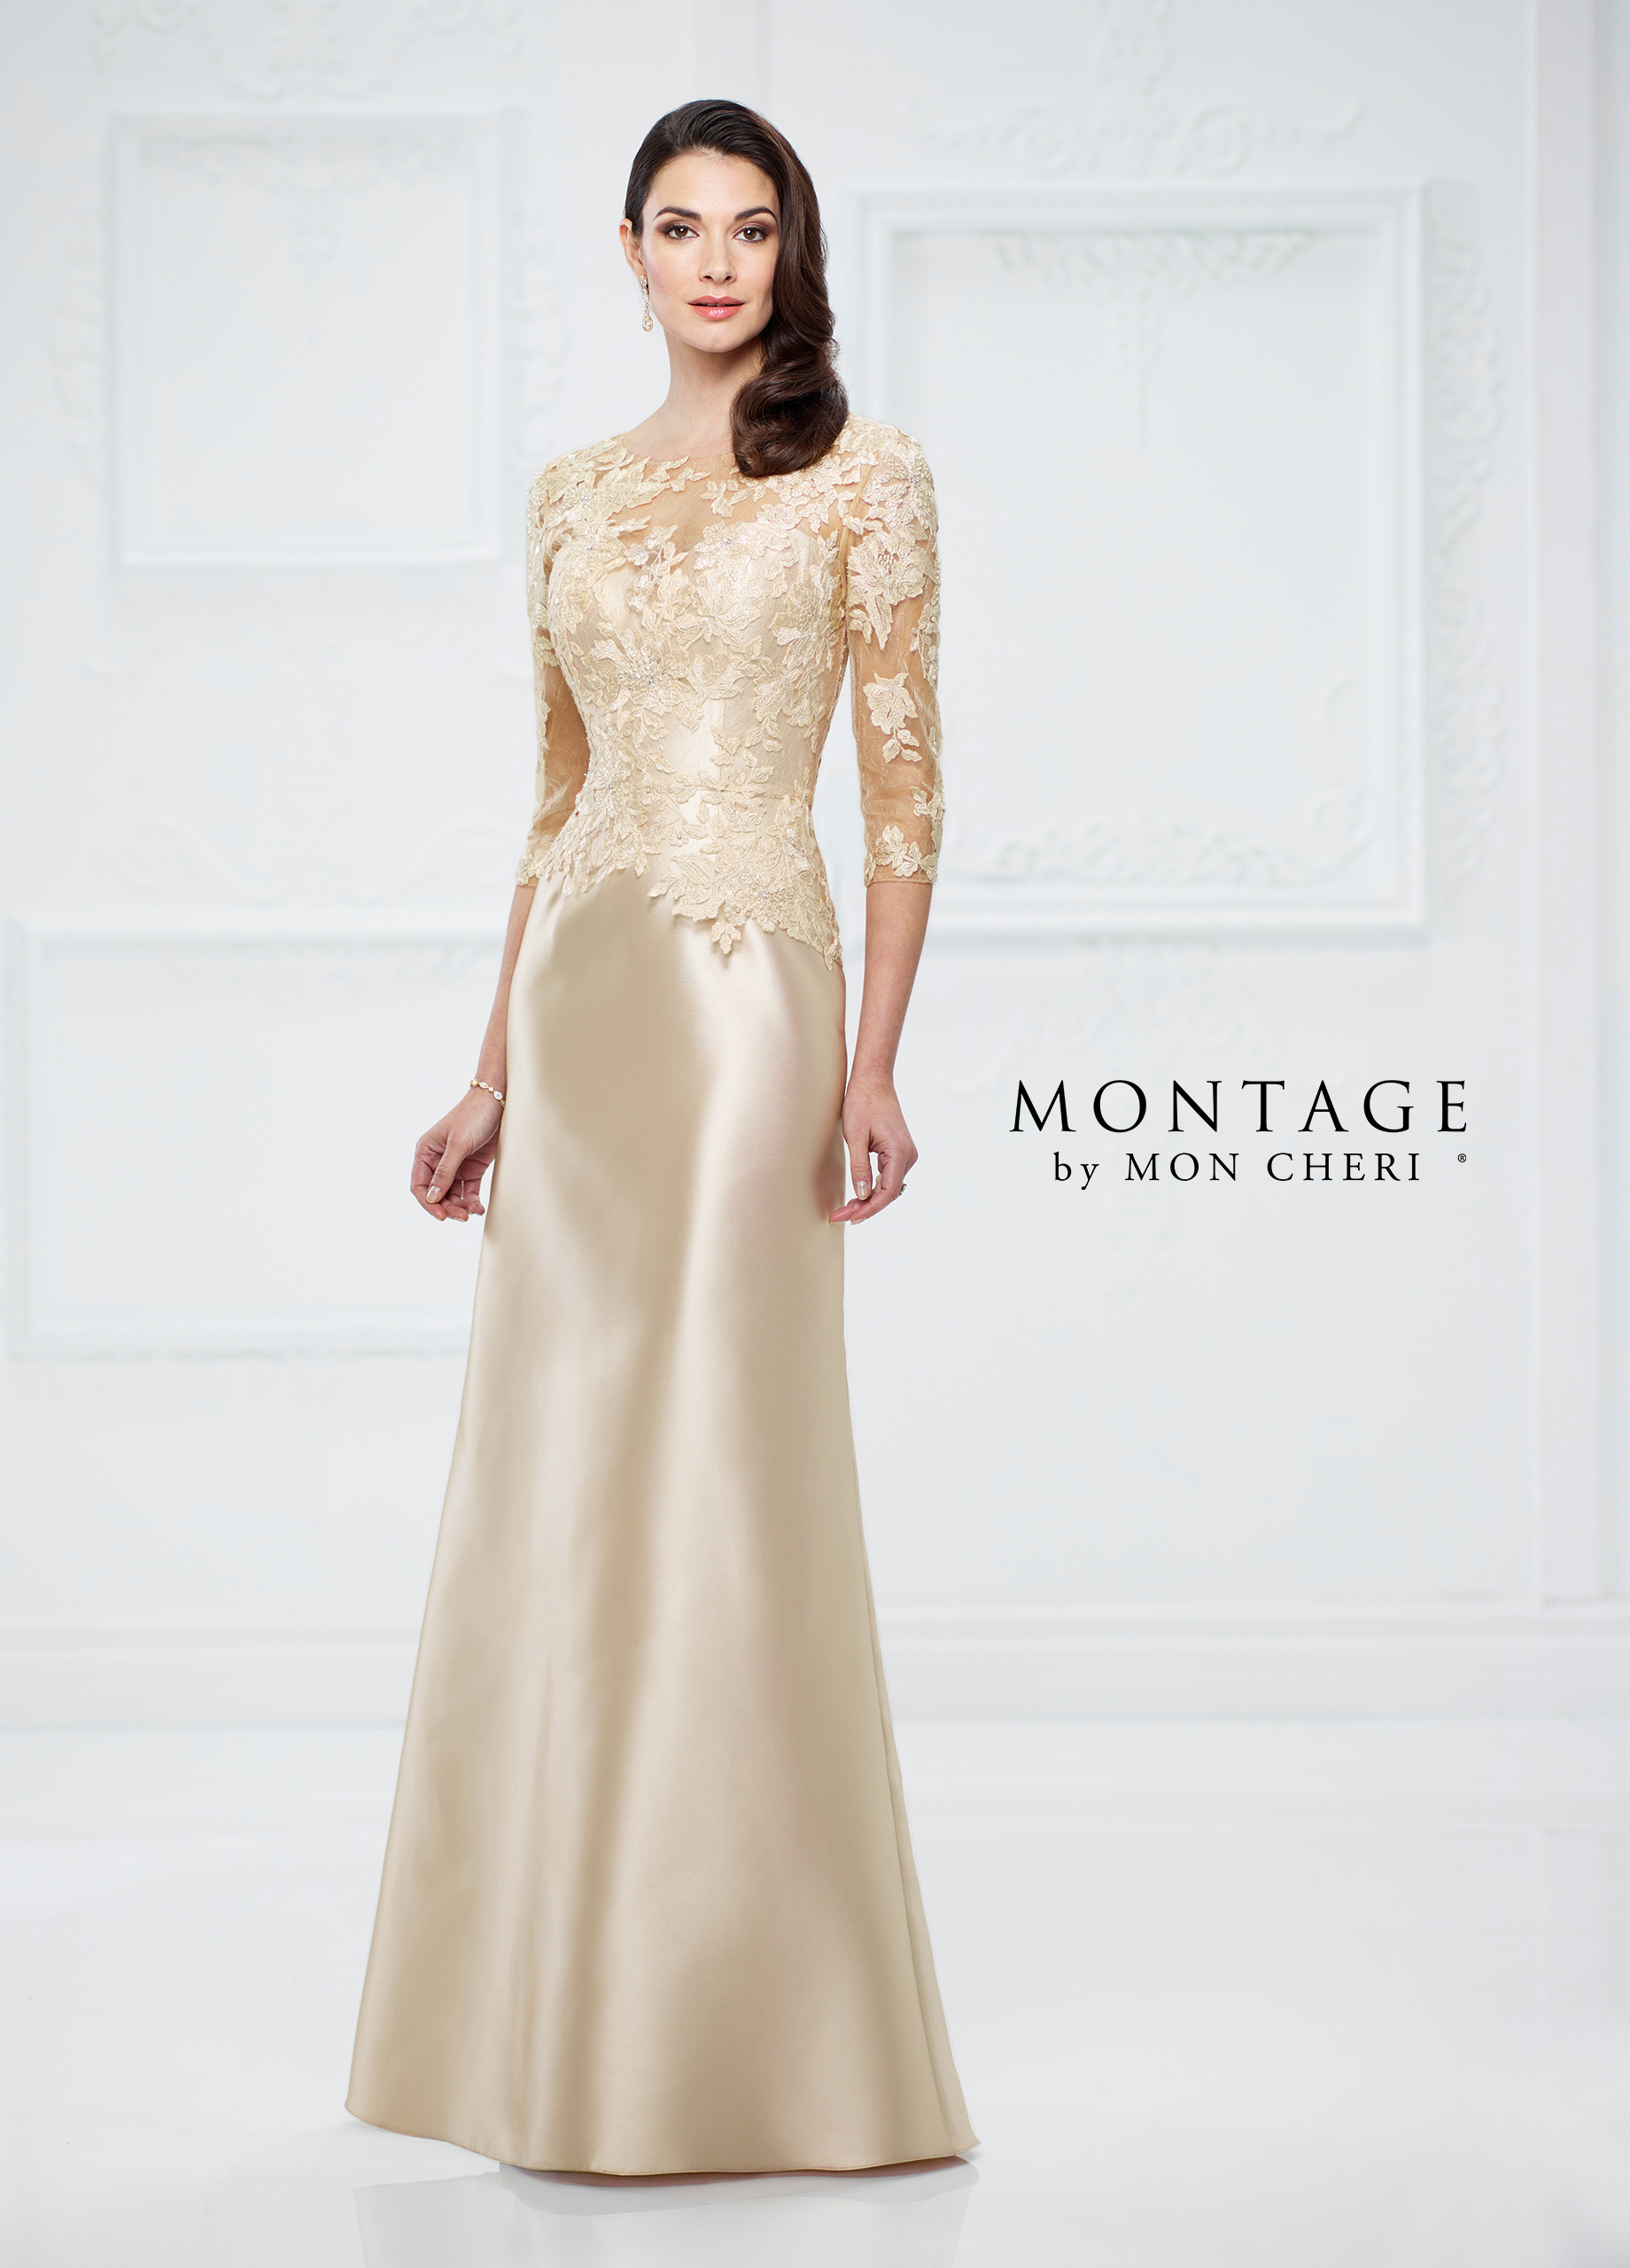 Latest Montage by Mon Cheri Bridal Dresses